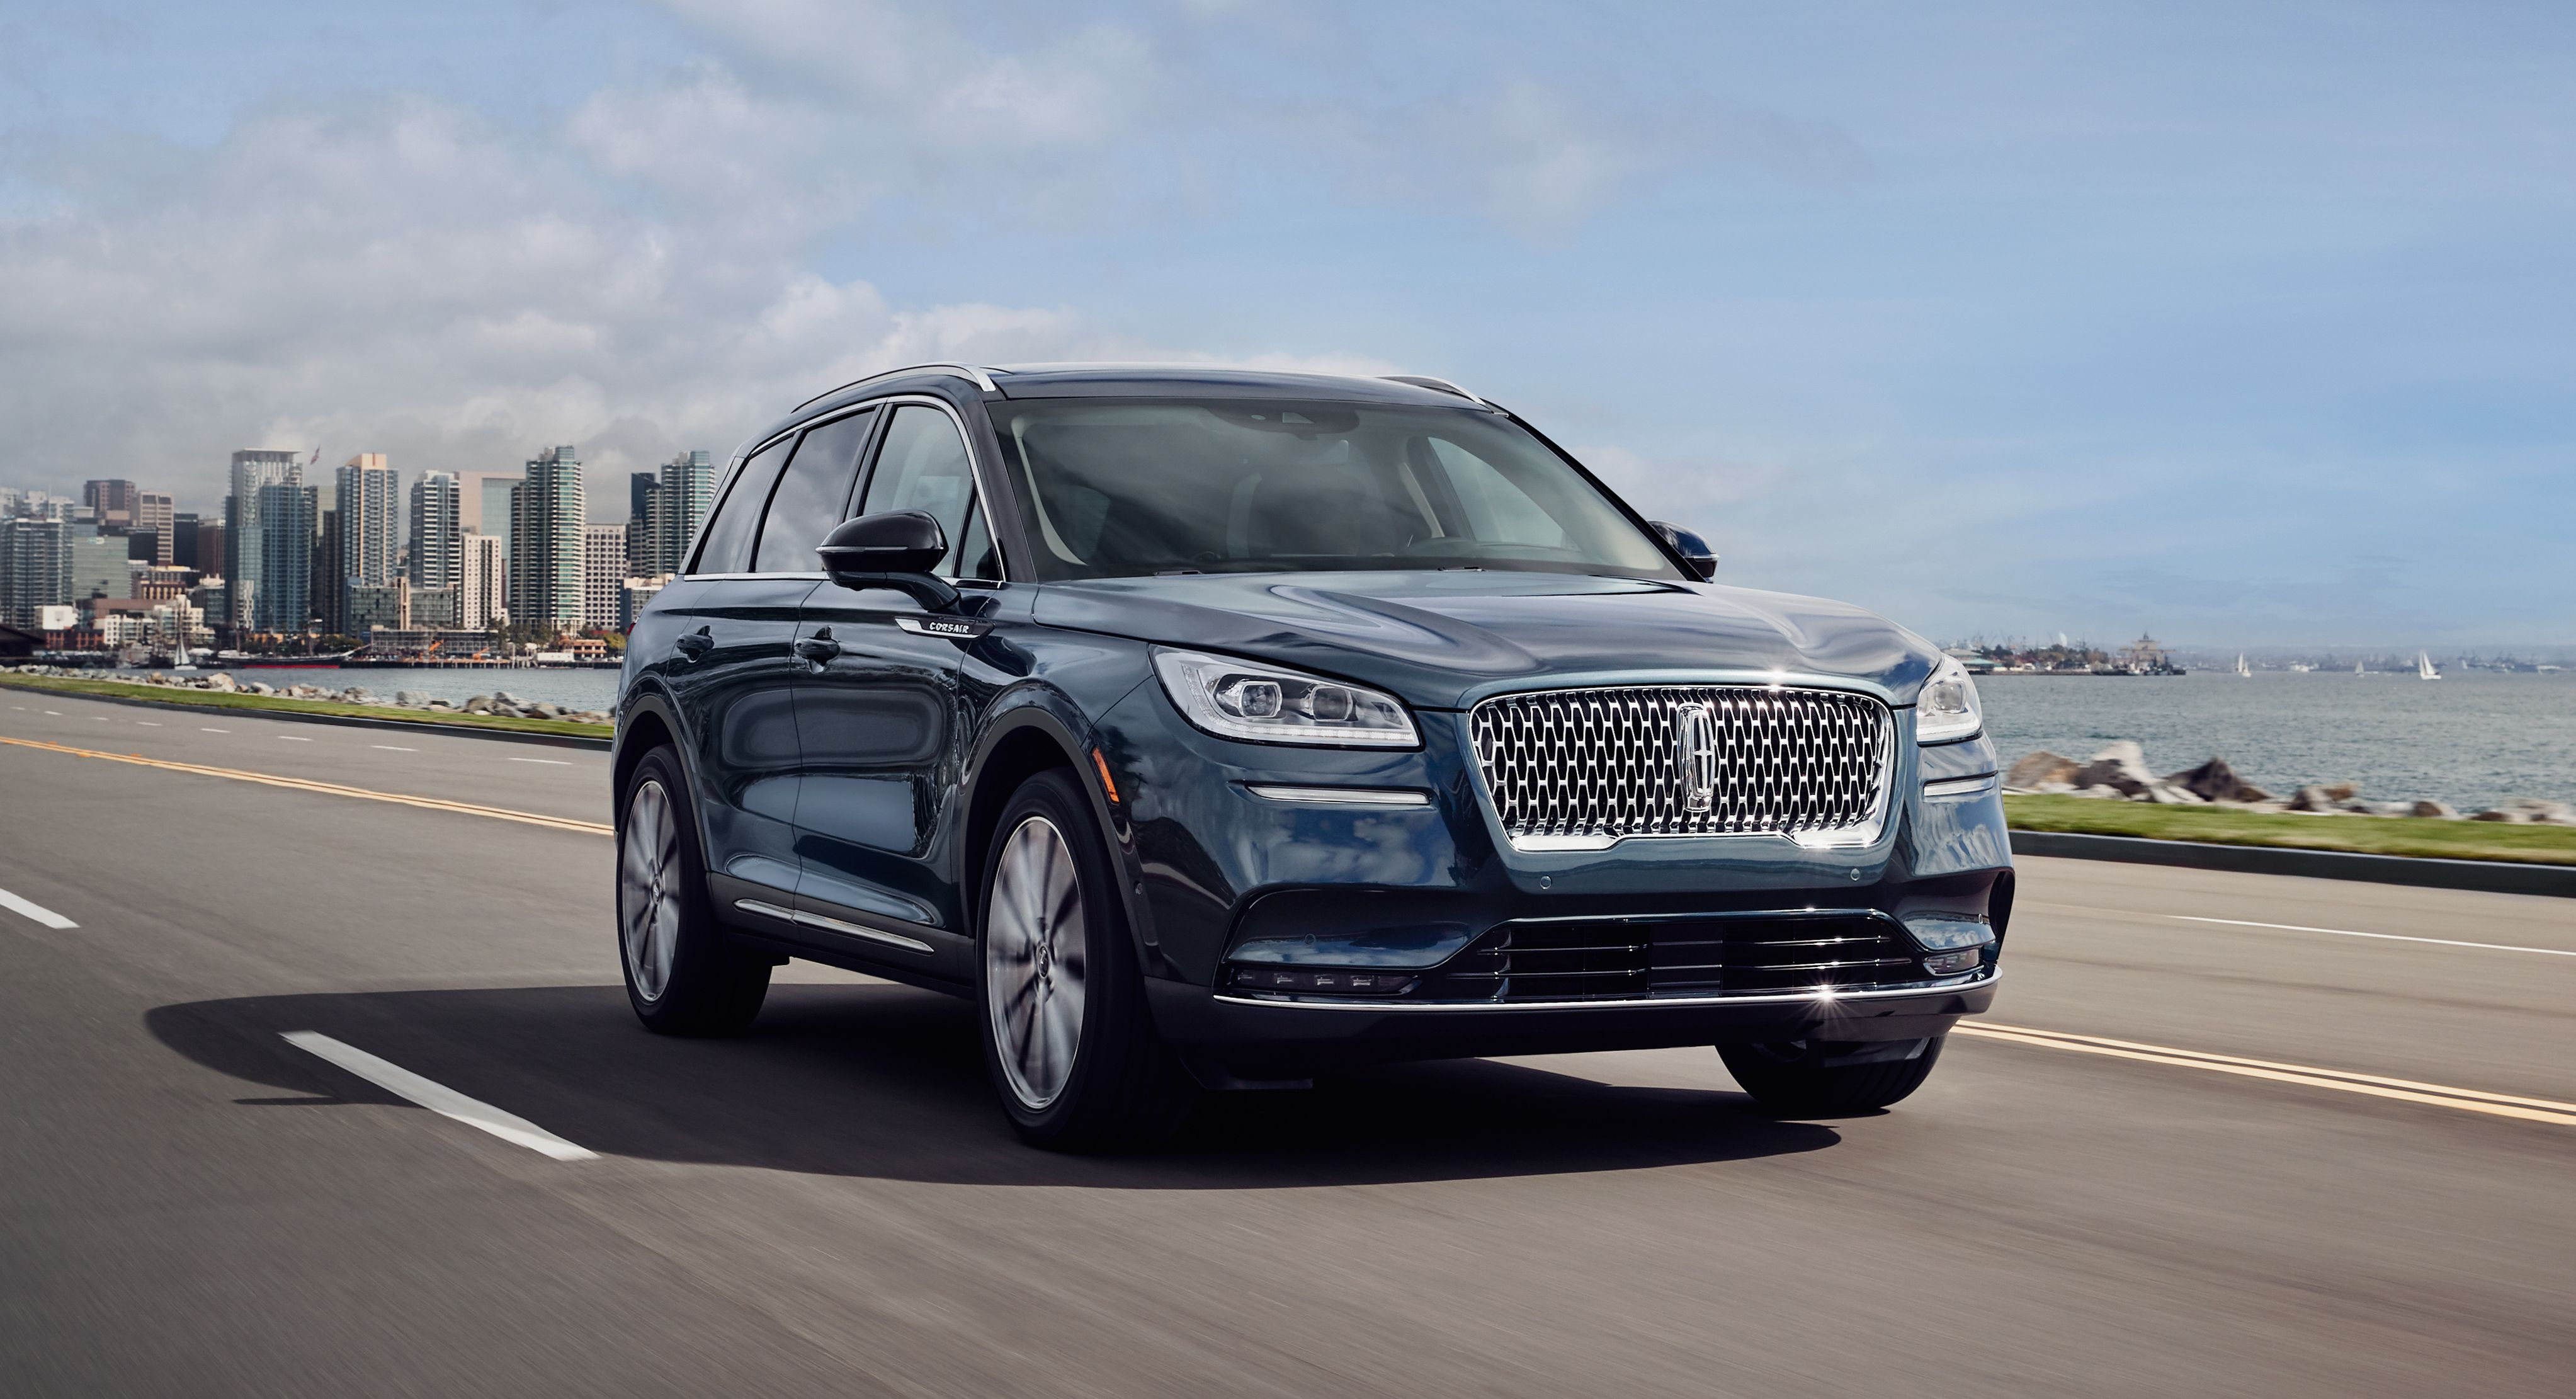 The 2020 Lincoln Corsair Can Cost More Than $60,000 Fully Loaded